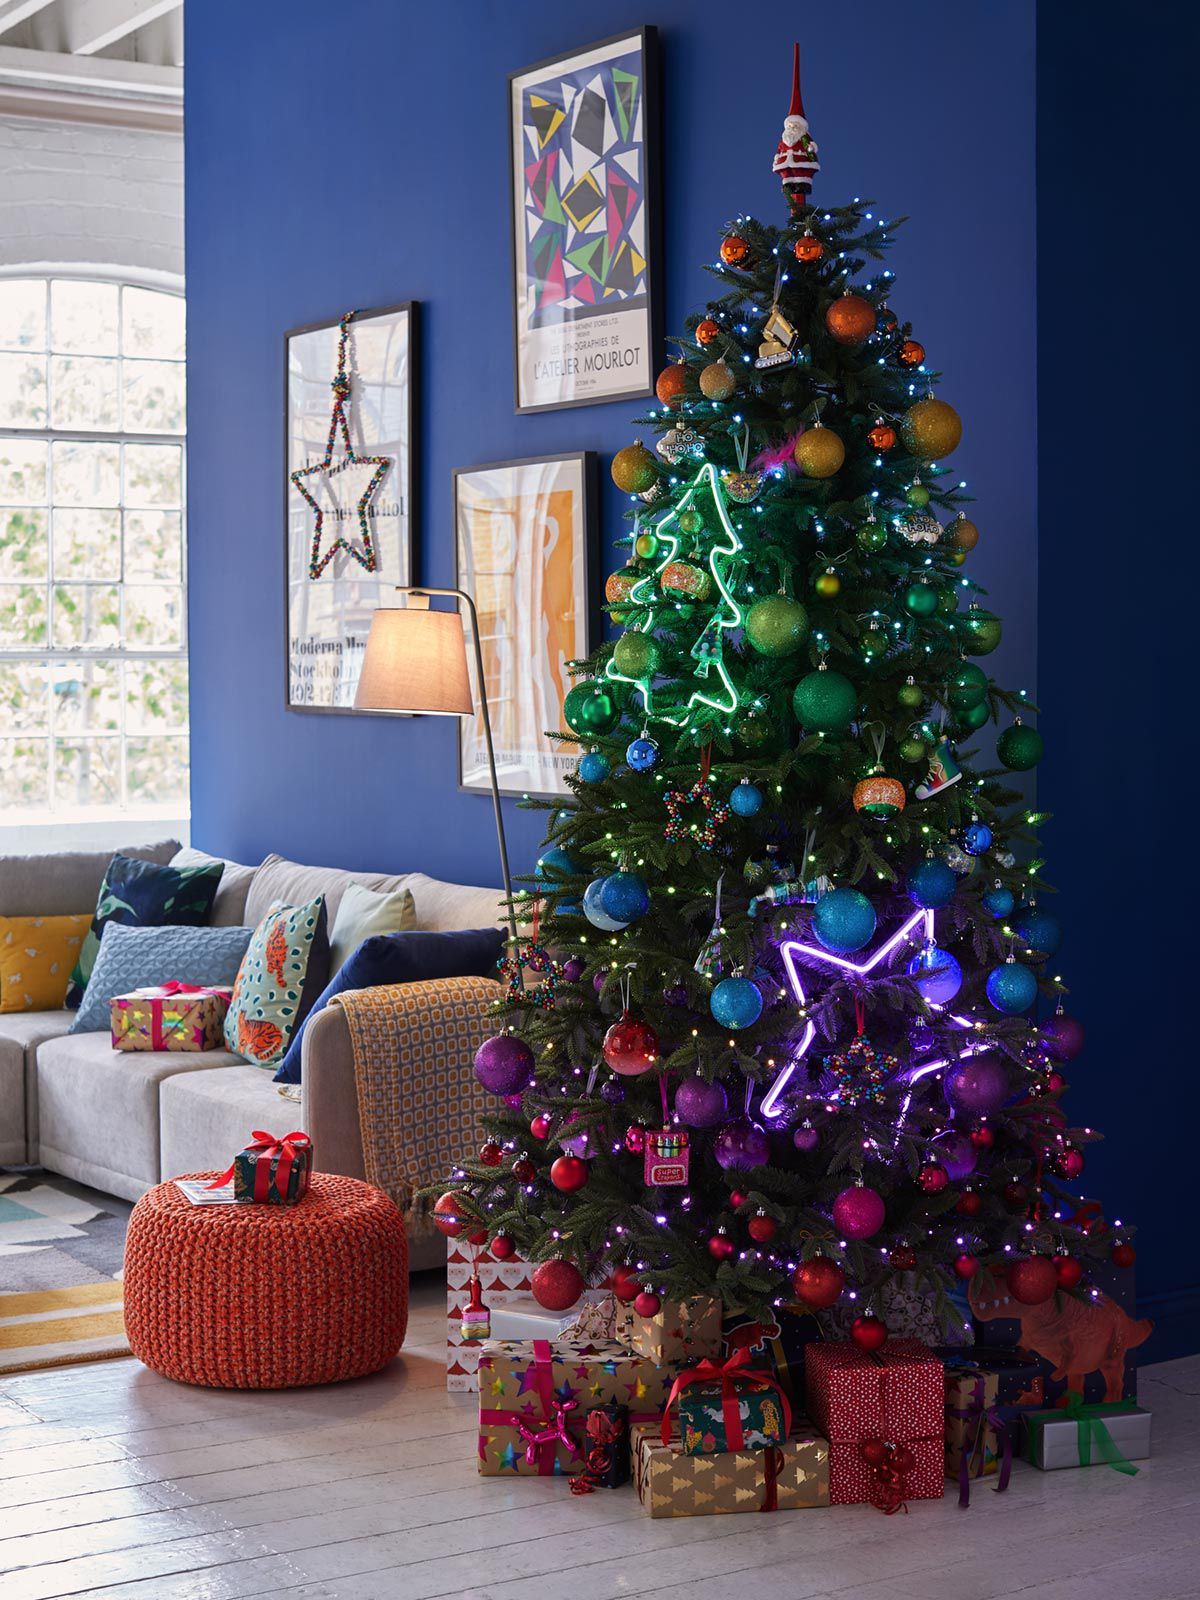 Beautiful Christmas tree decorated with colourful, Pop Art inspired baubles and ornaments